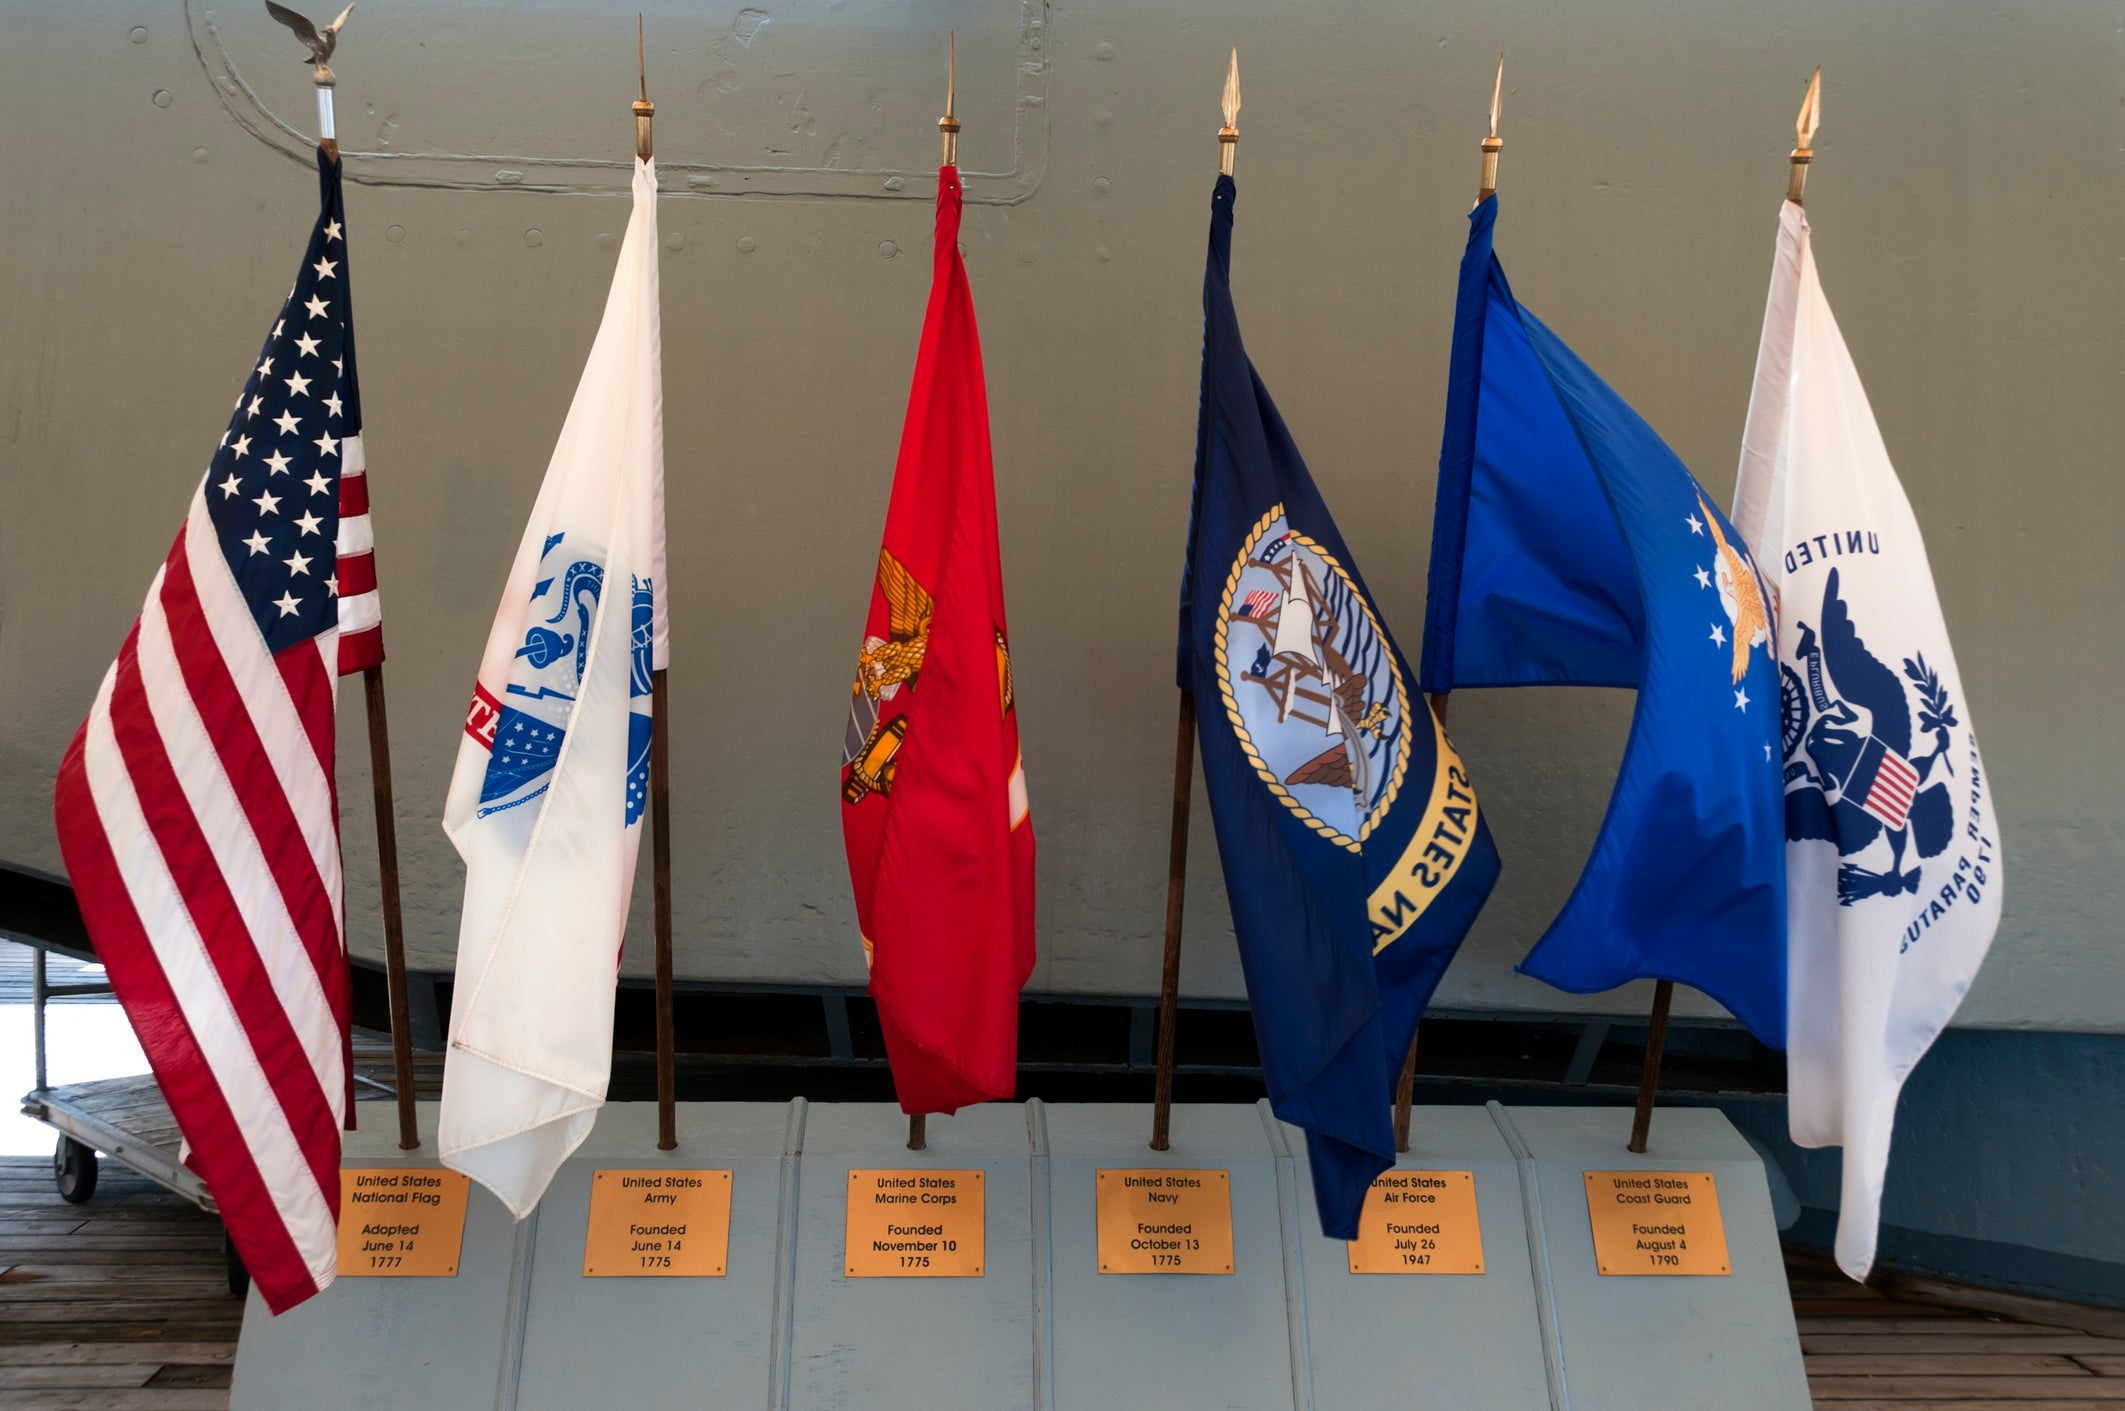 Ravenox Military Flags for US Army, Navy, Marines, Coast Guard and Air Force